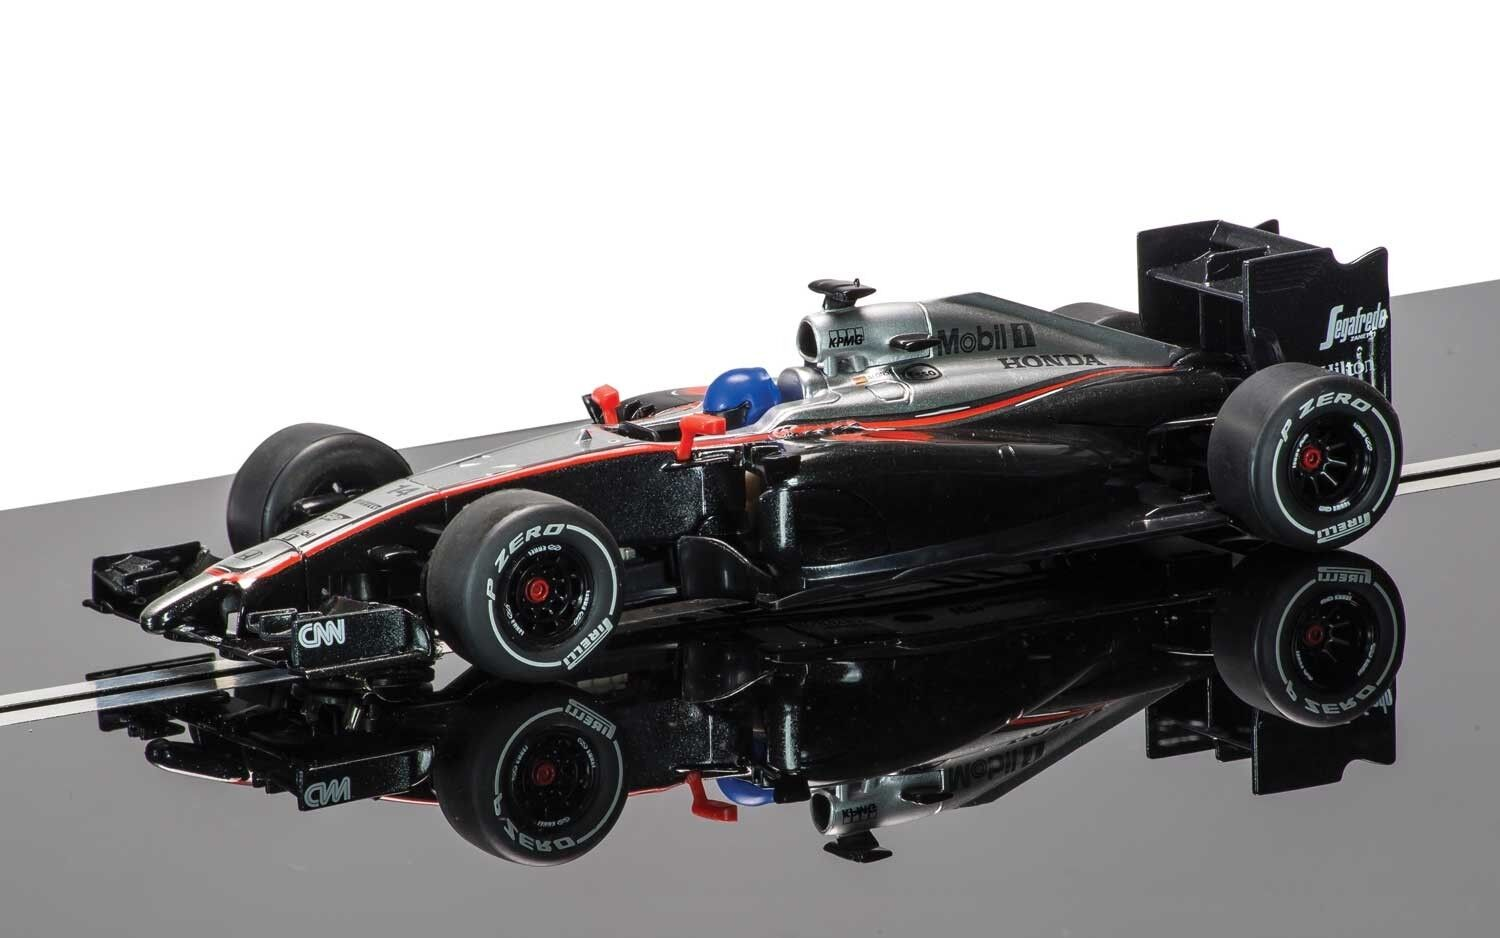 C3620 Scalextric McLaren Honda 2015 Livery - Scalextric Club Exclusive